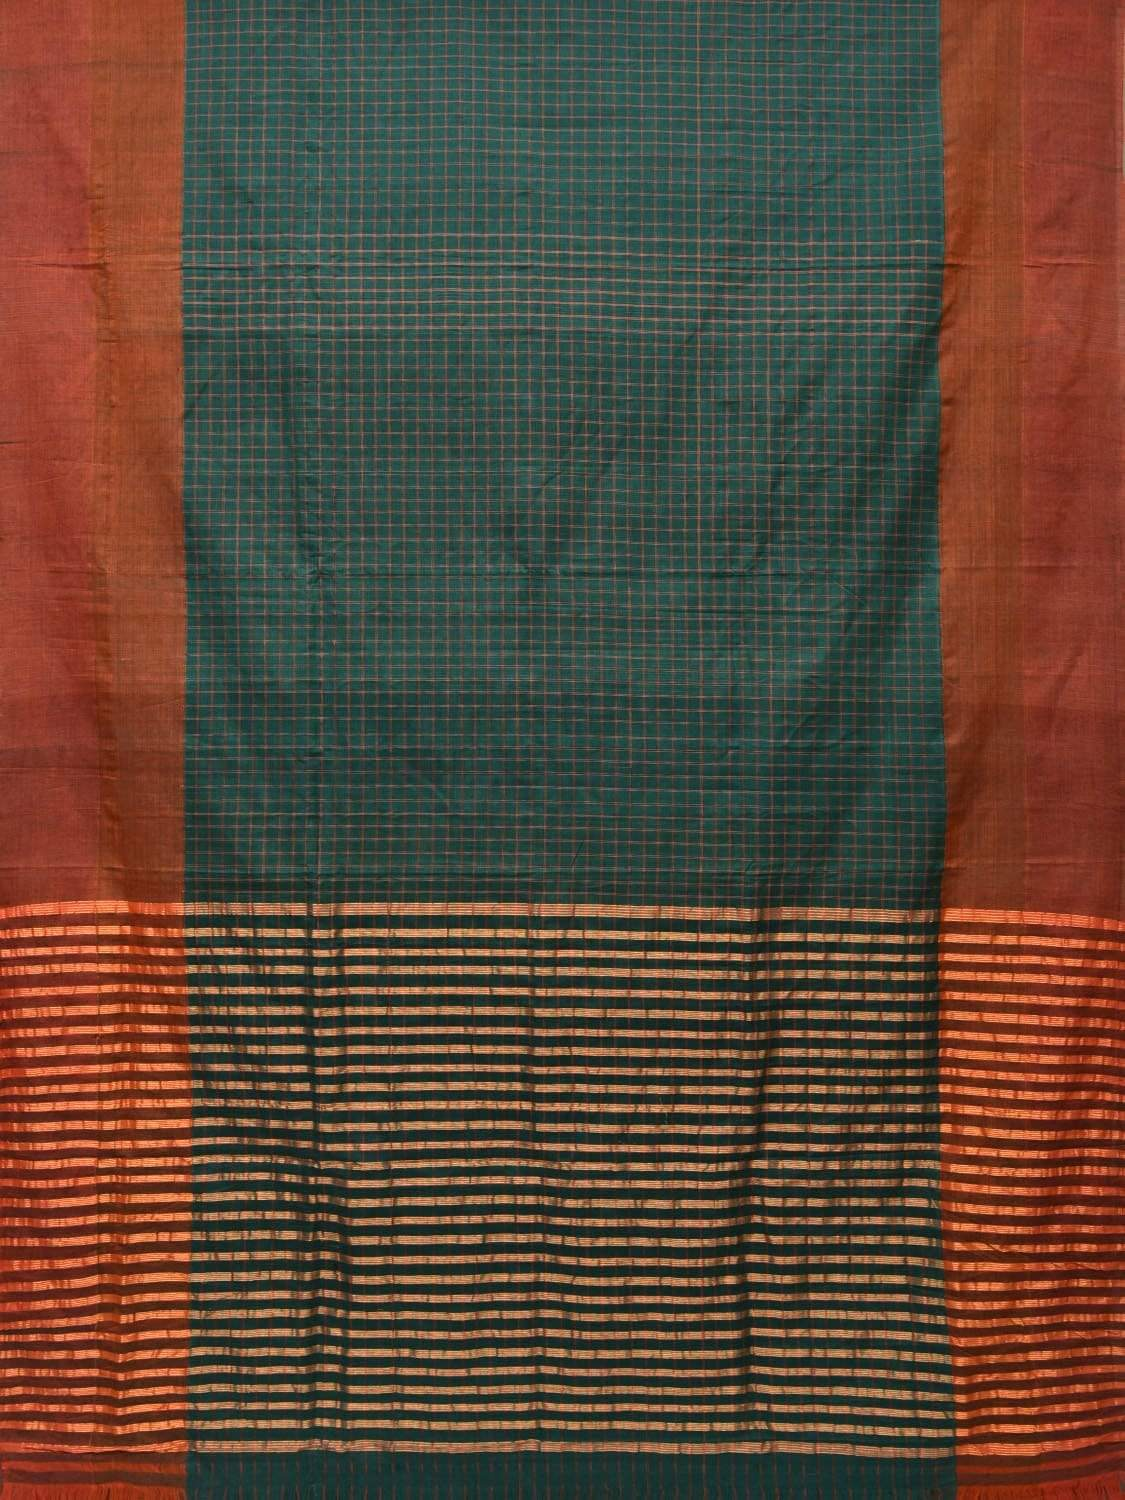 Green Cotton Handloom Saree with All Over Checks Design o0279